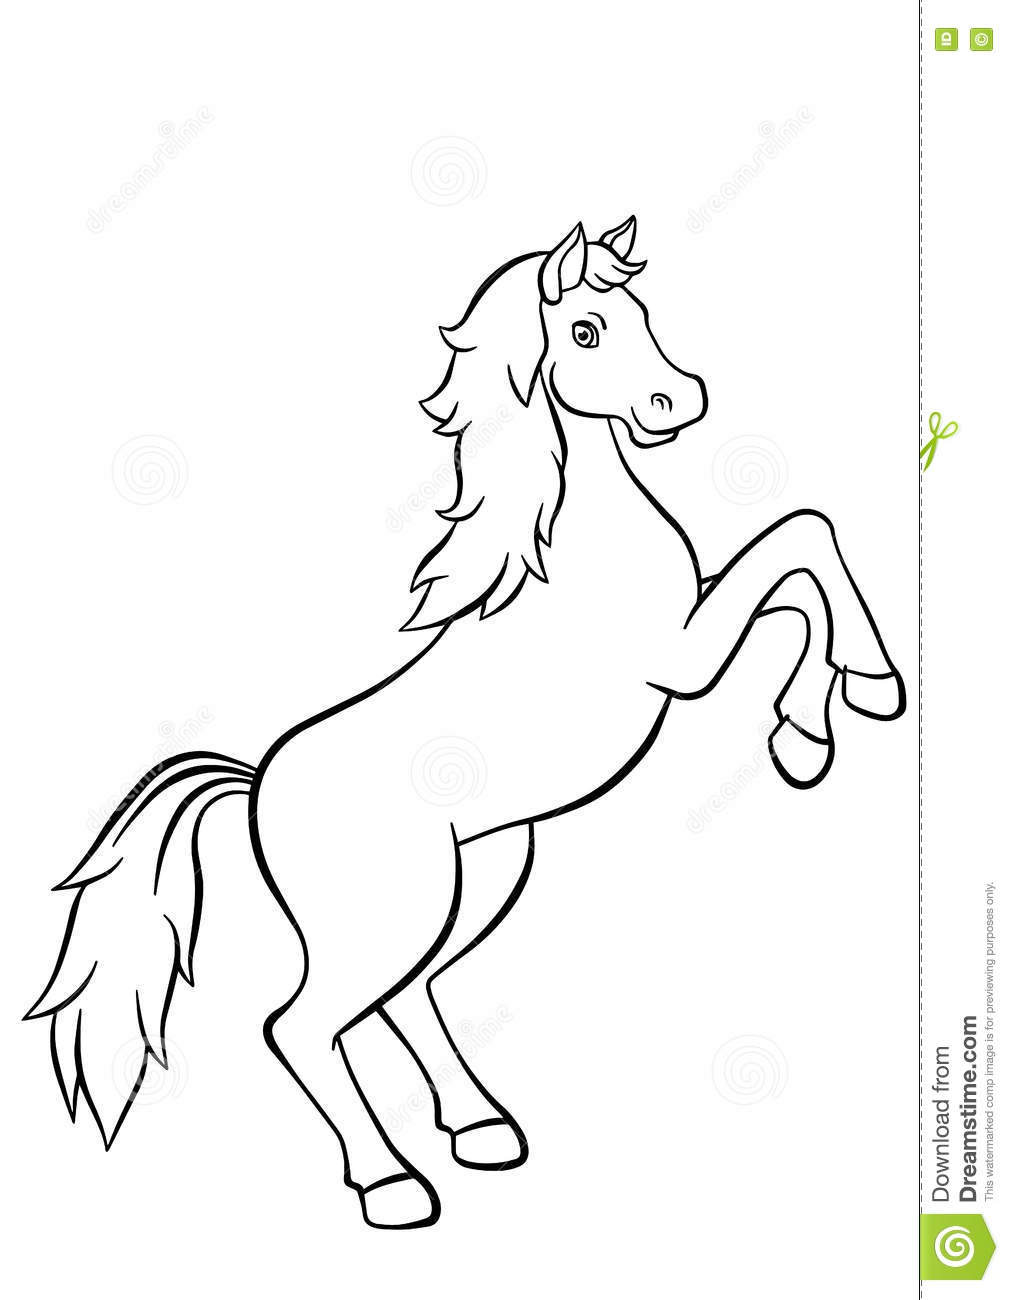 Coloring pages. Animals. Cute horse.